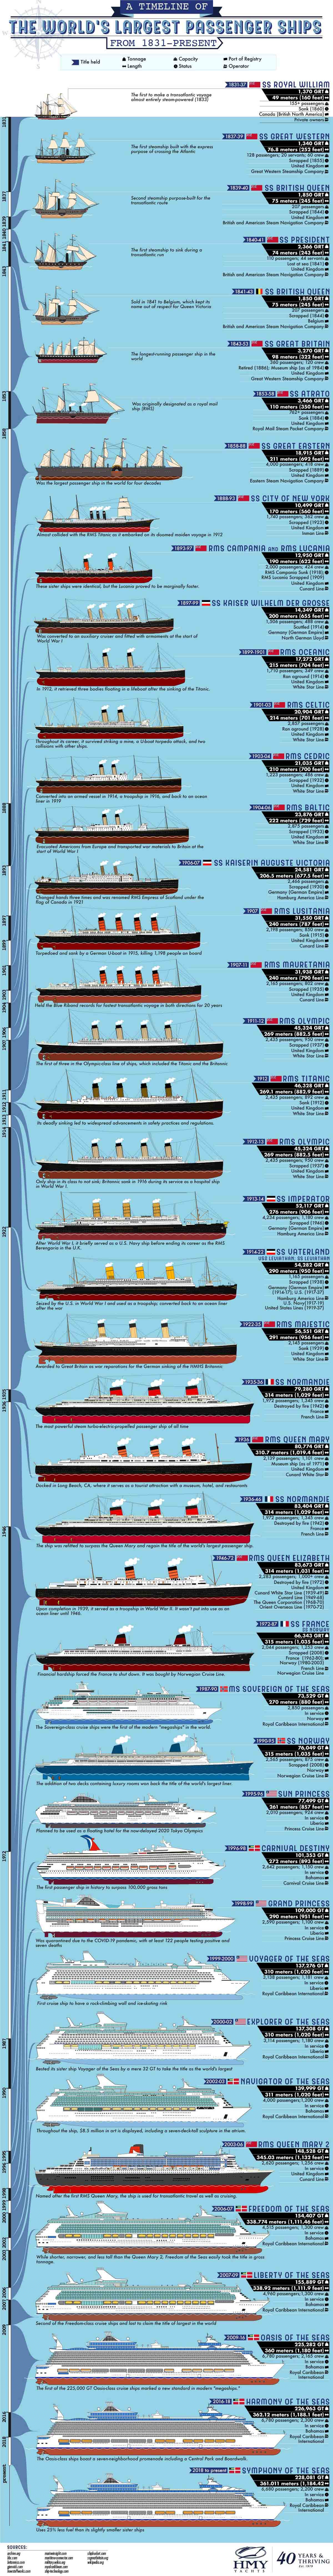 A Timeline of The World's Largest Passenger Ships From 1831-Present